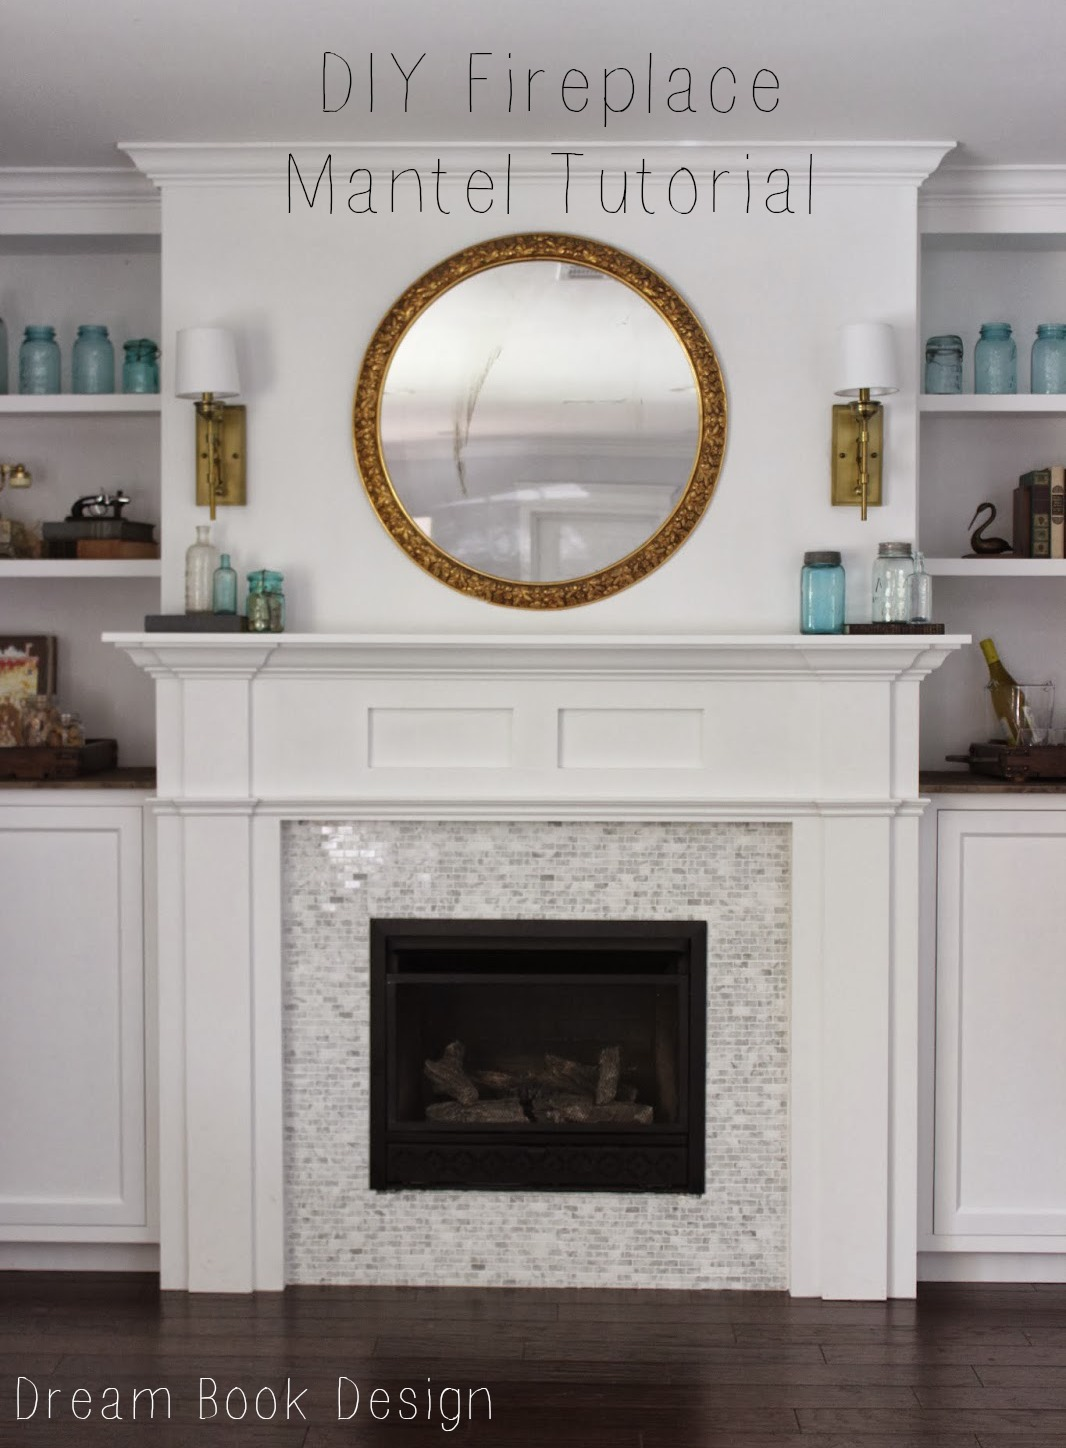 Diy fireplace mantel tutorial dream book design for How to design a fireplace mantel